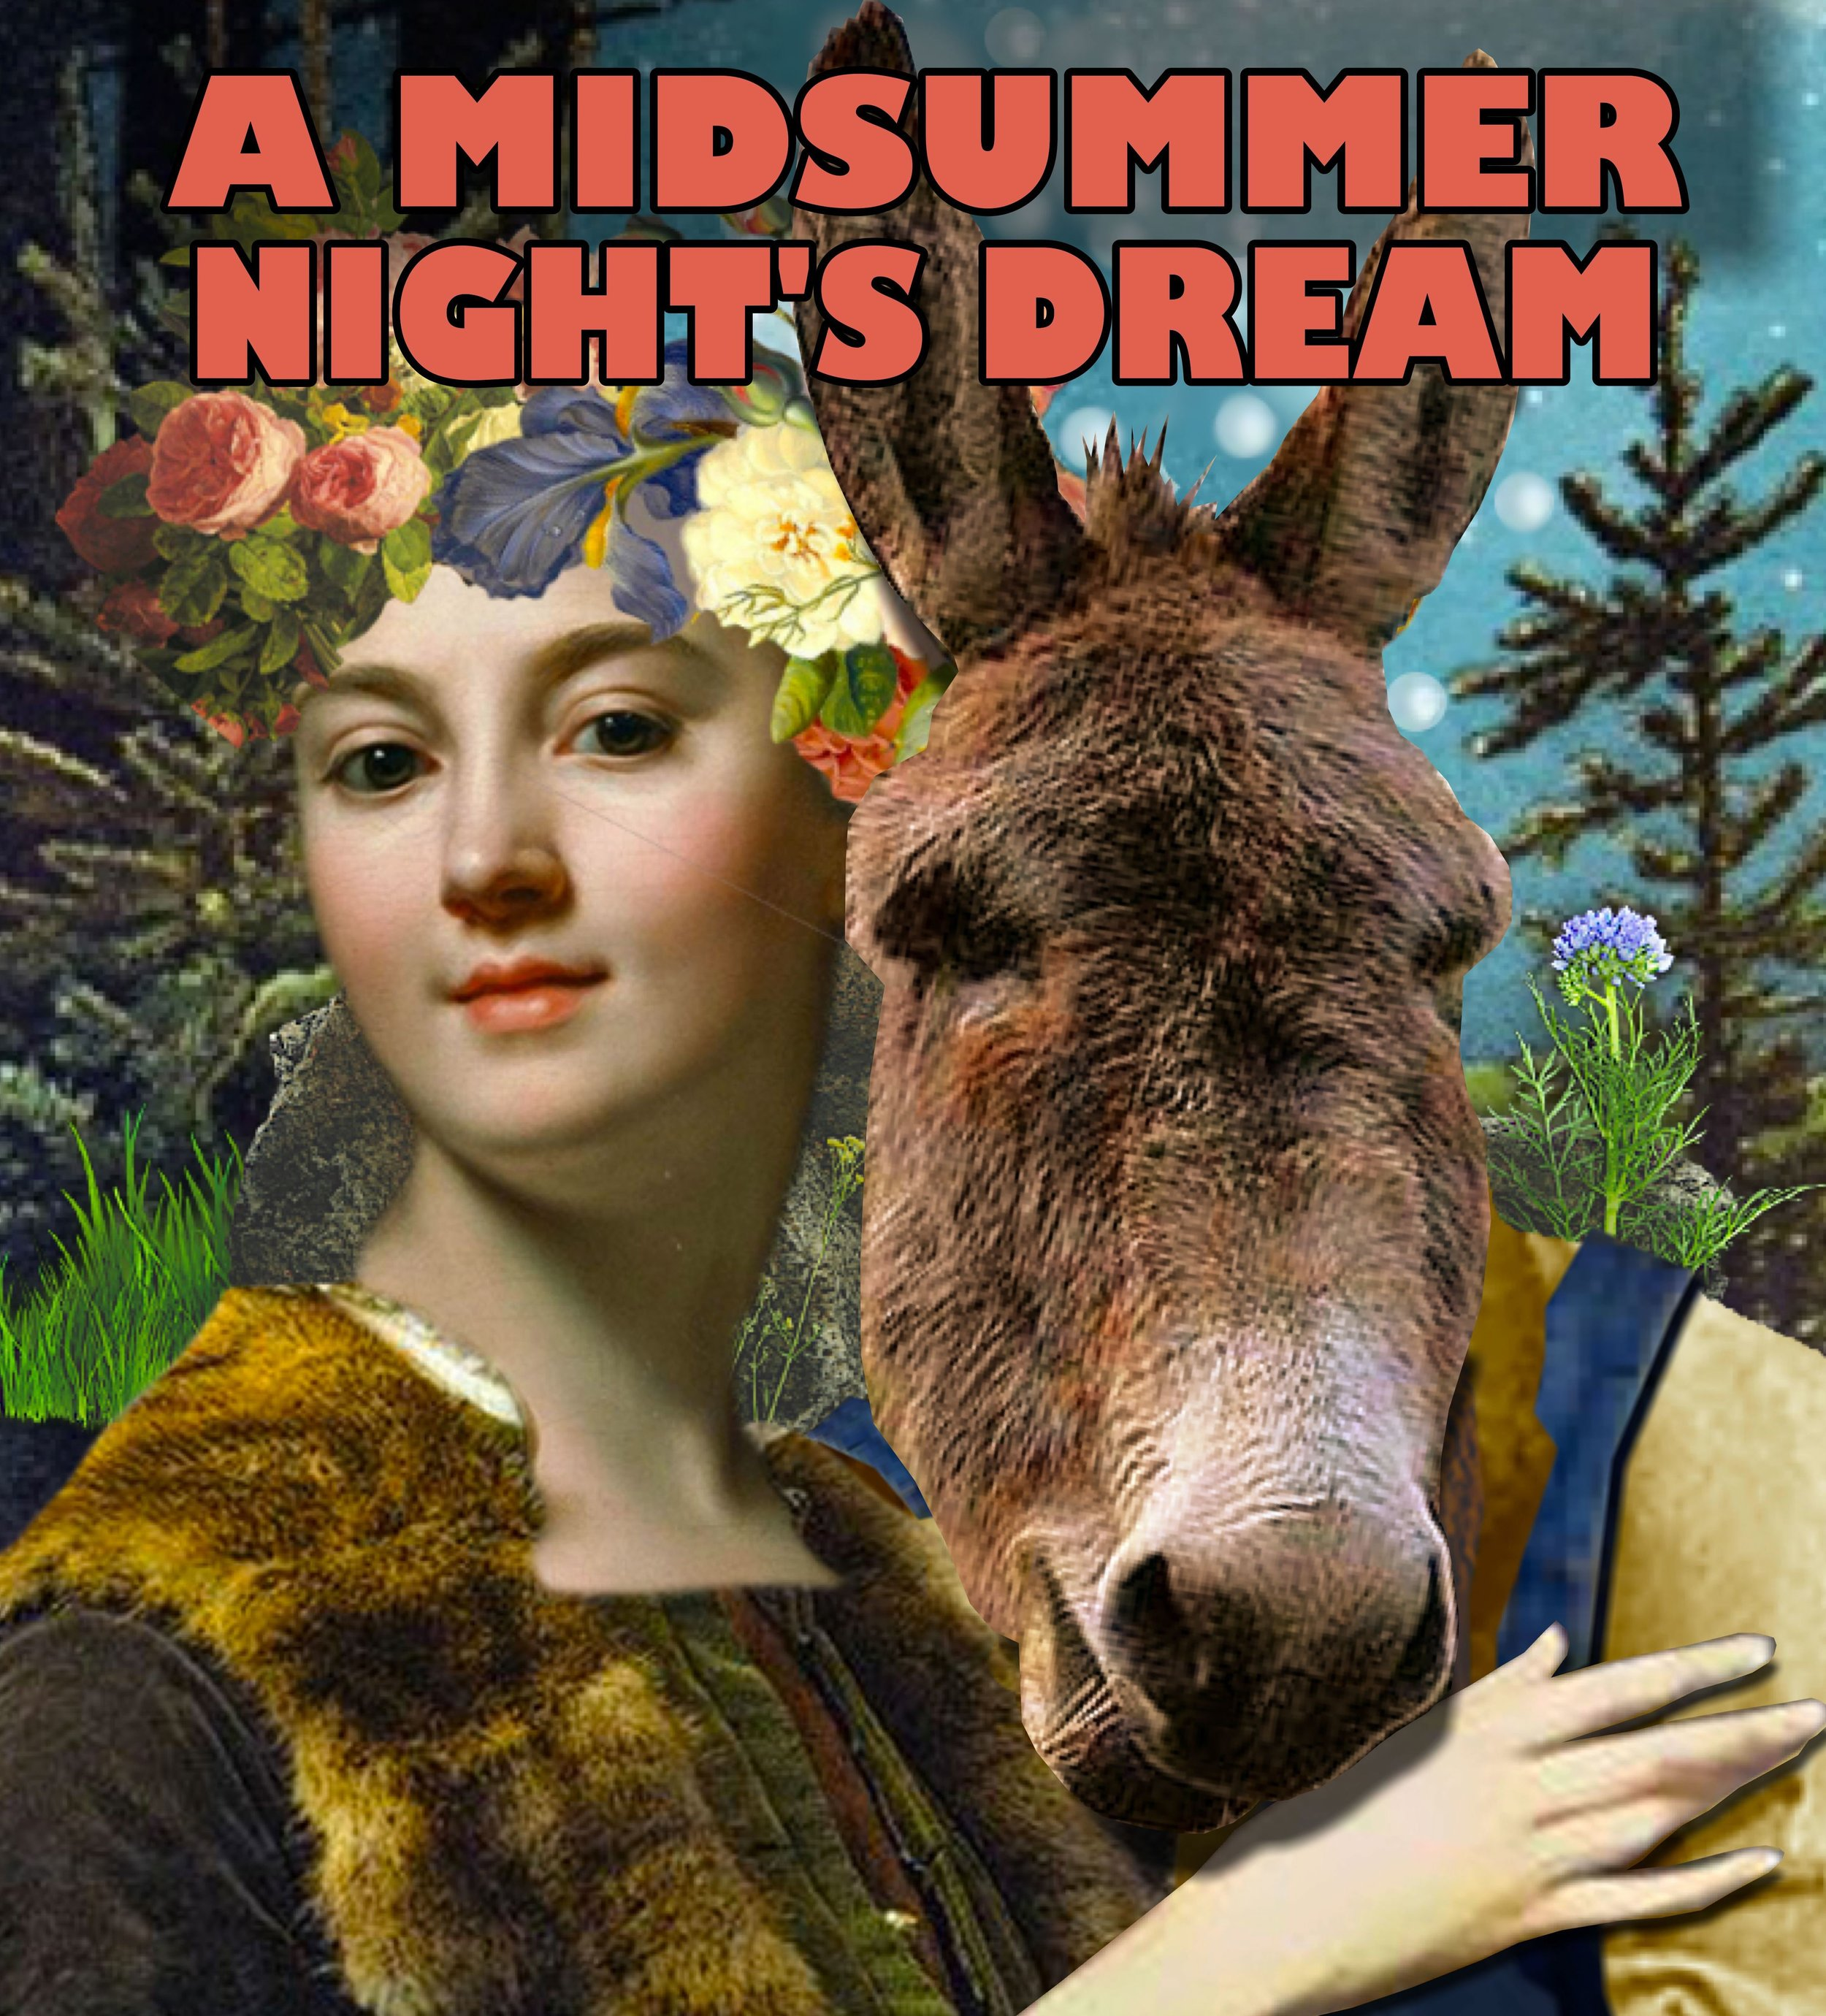 A Midsummer Nights's Dream - by William ShakespeareDirected by Ben StockmanA magical tale populated by lovers, fools, faerie folk, imagination, and invention!Performances:Friday, July 12th, 6pm + Saturday, July 13th, 1pm & 6pm + Sunday, July 14th, 1pmTickets: Adults $15, Seniors $13, Students $11Sponsored by Trust Company of Vermont and Baystate Financial